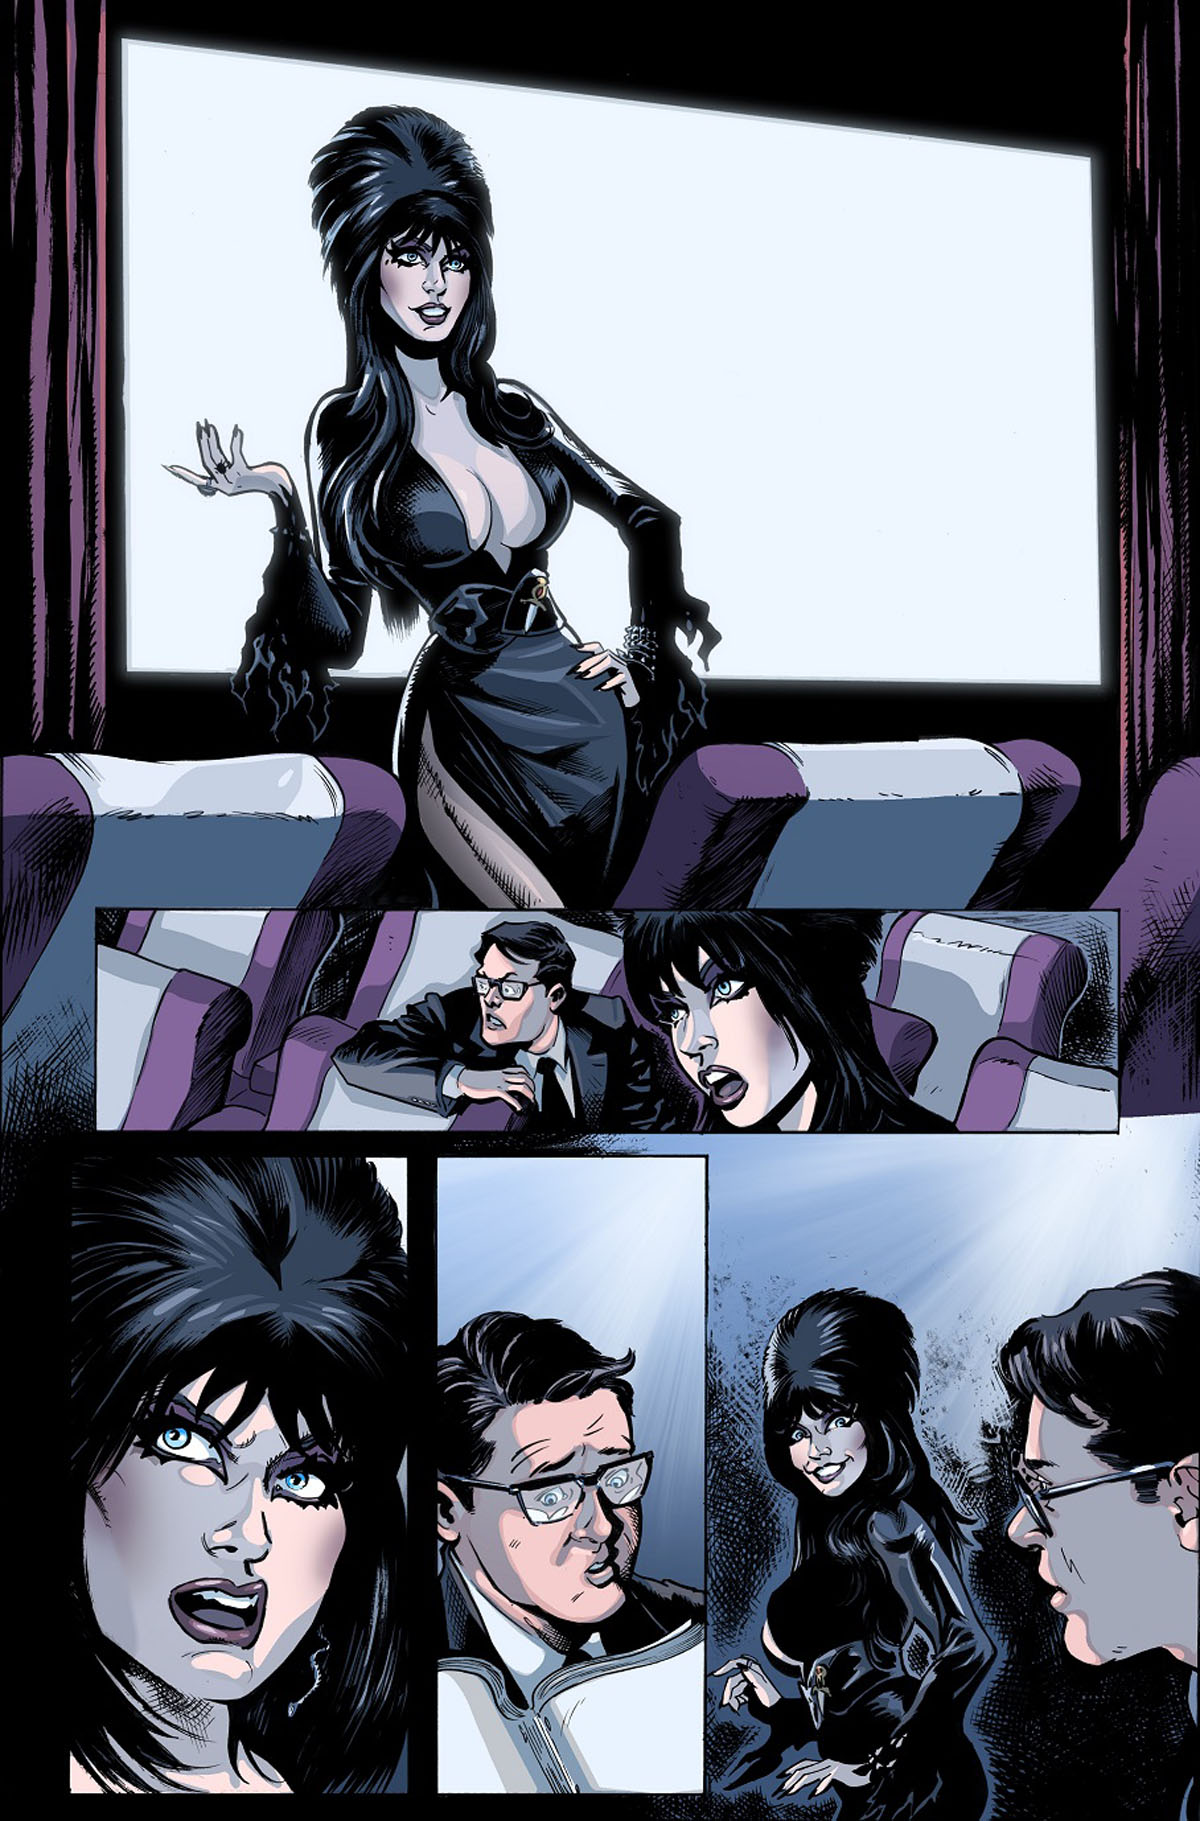 Elvira: The Wrath of Con #1 page 4 by Dave Acosta